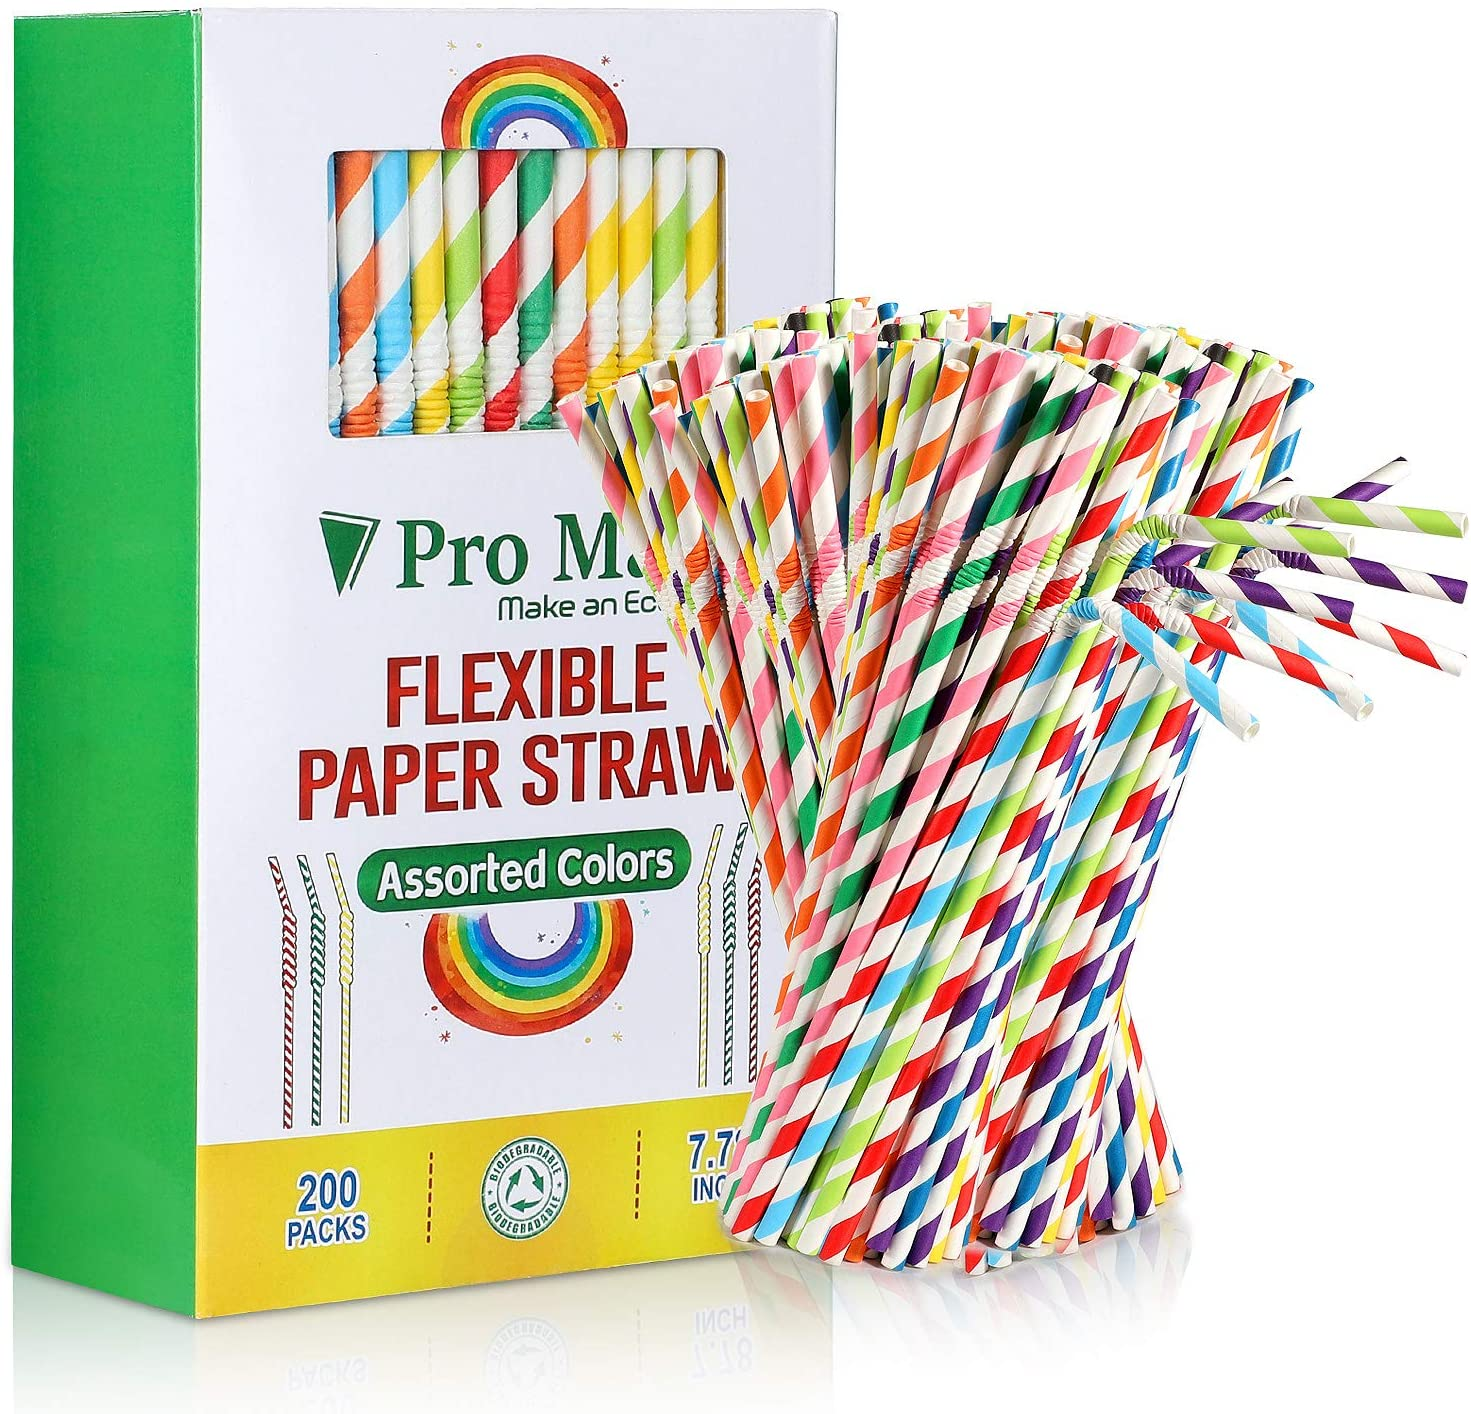 200 Pack Paper Drinking Straws Biodegradable,Flexible Stripe Straws Bulk for Juices, Shakes, Smoothies - Disposable& Eco-Friendly Straw for Birthdays, Weddings & Party (Assorted Colors)